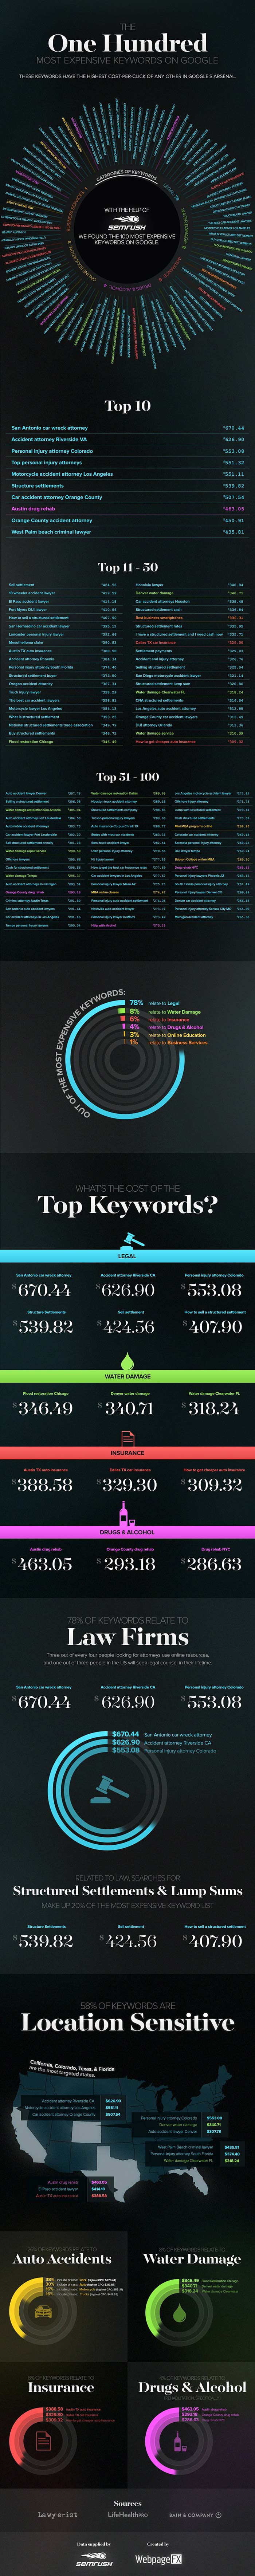 The Most Costly Keywords On Google AdWords Infographic